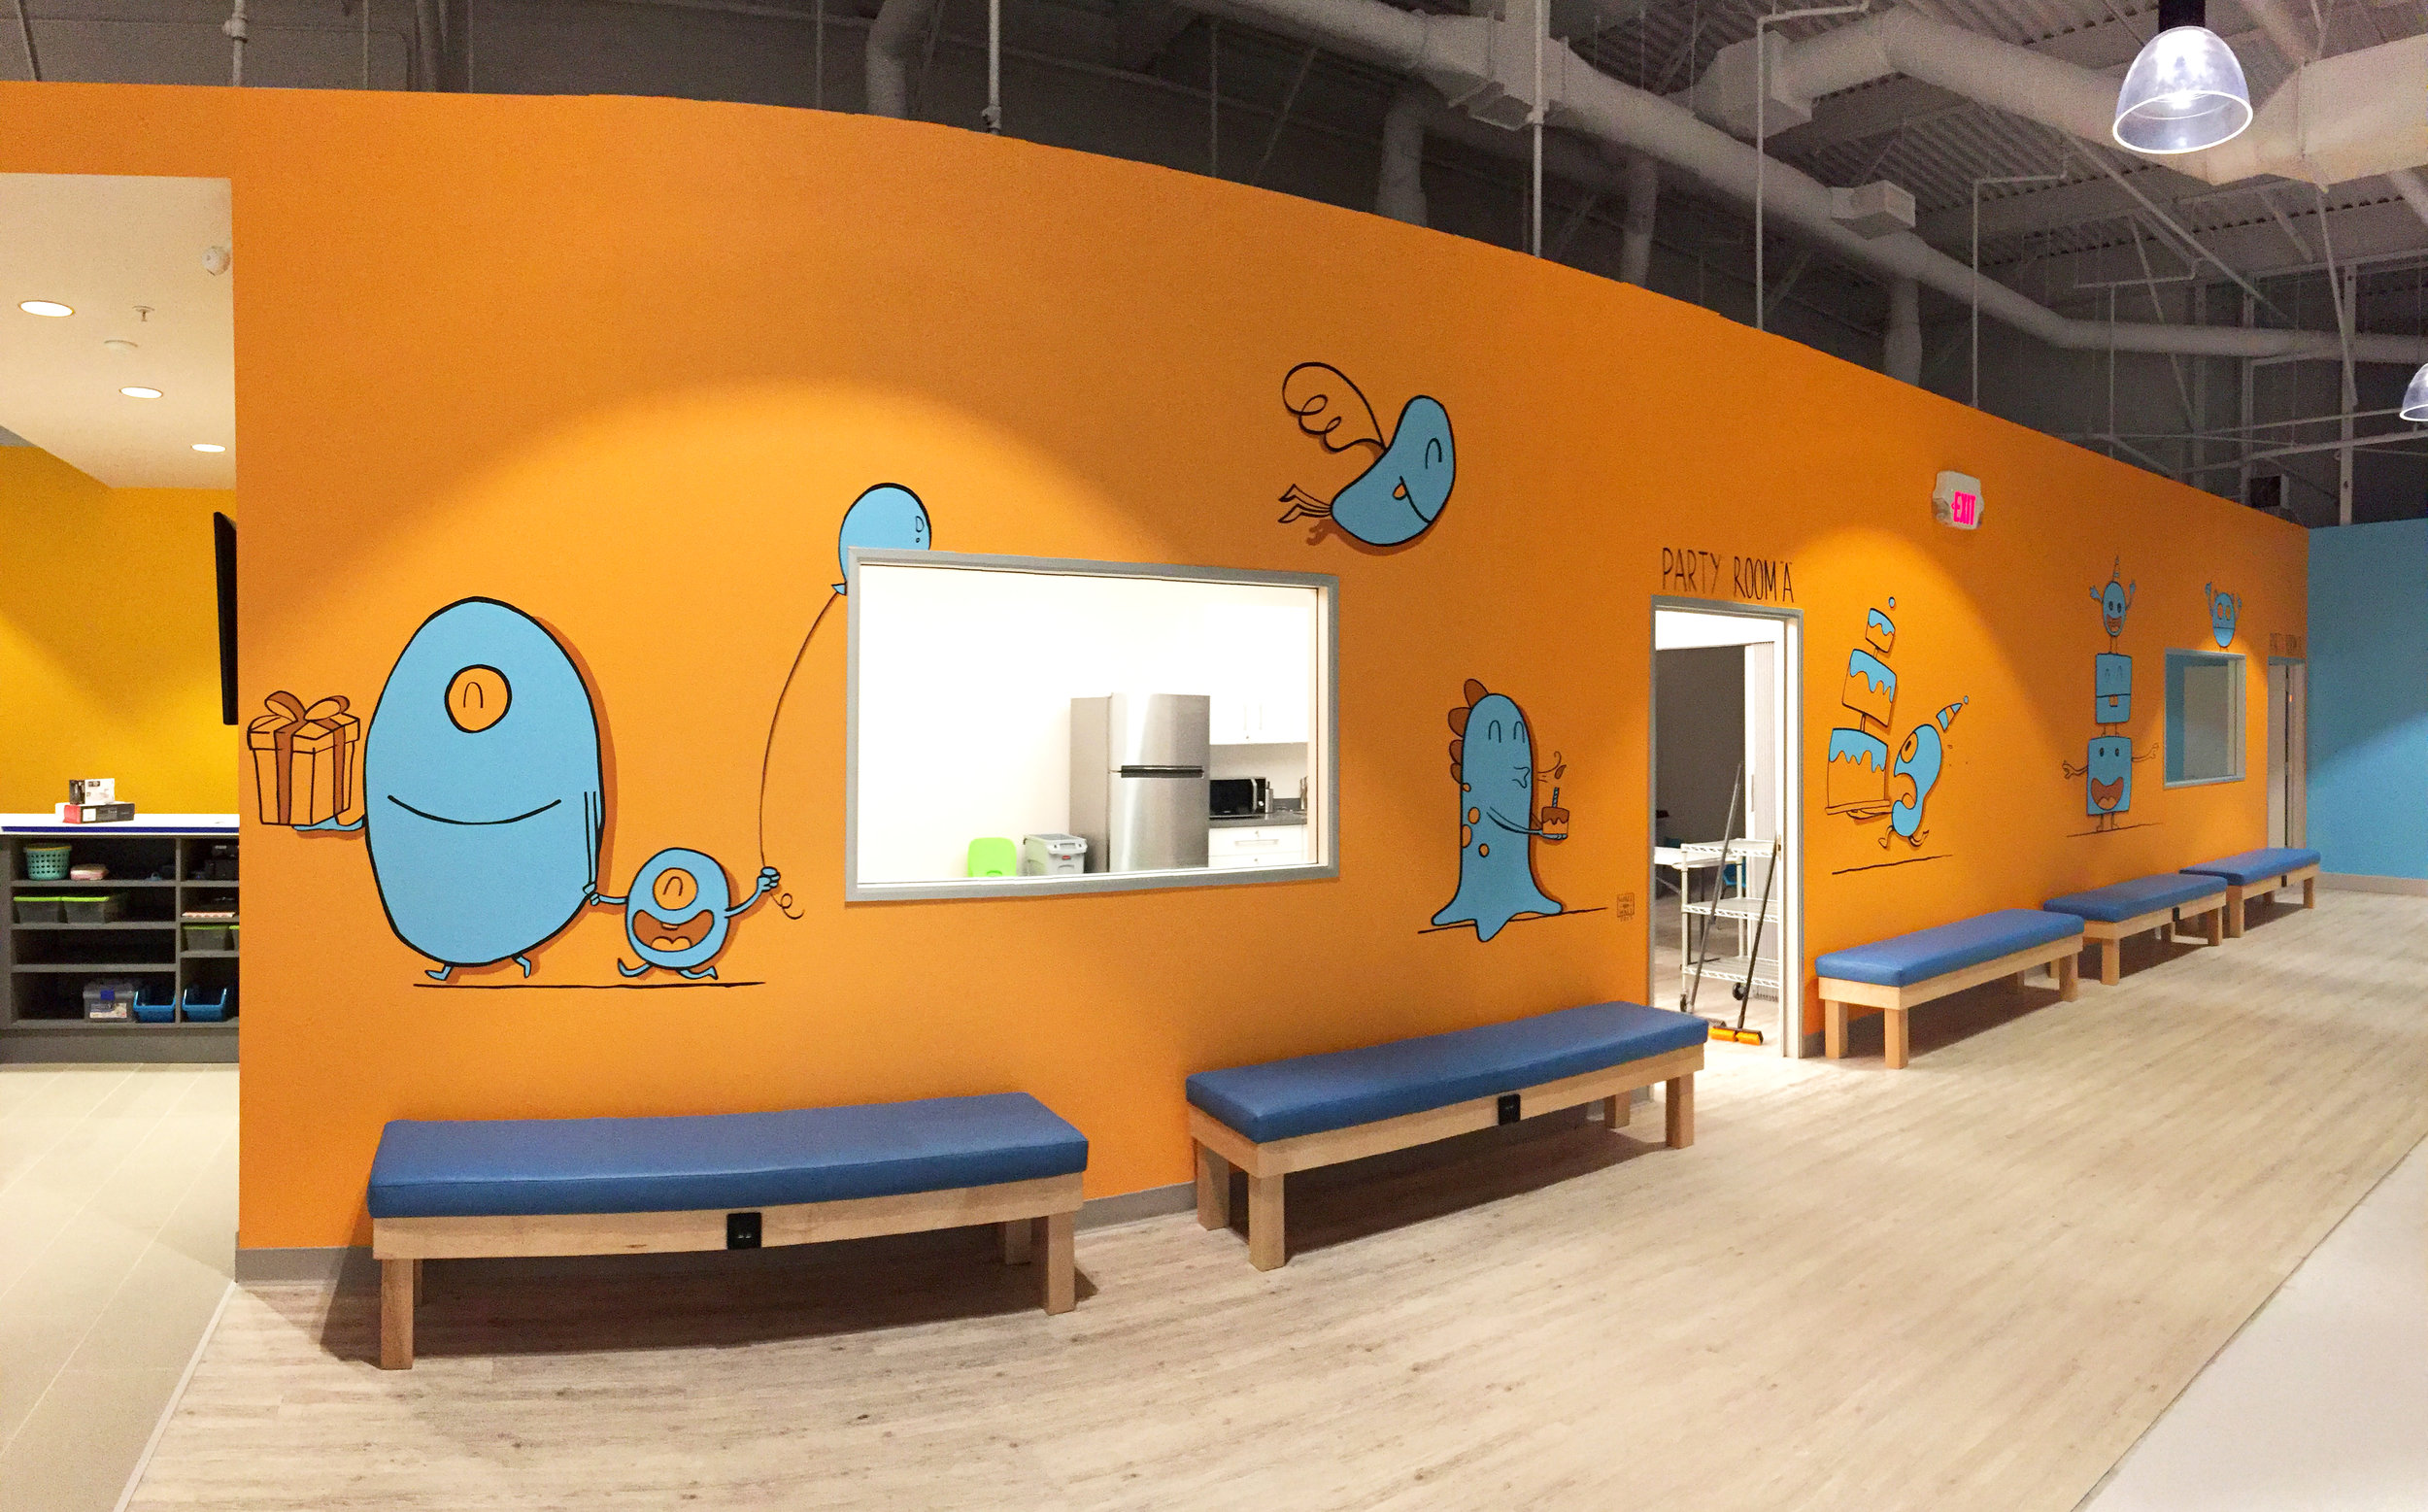 Office-commercial-mural-san-francisco-hop-n-play-wall-and-wall-mural-company.jpg